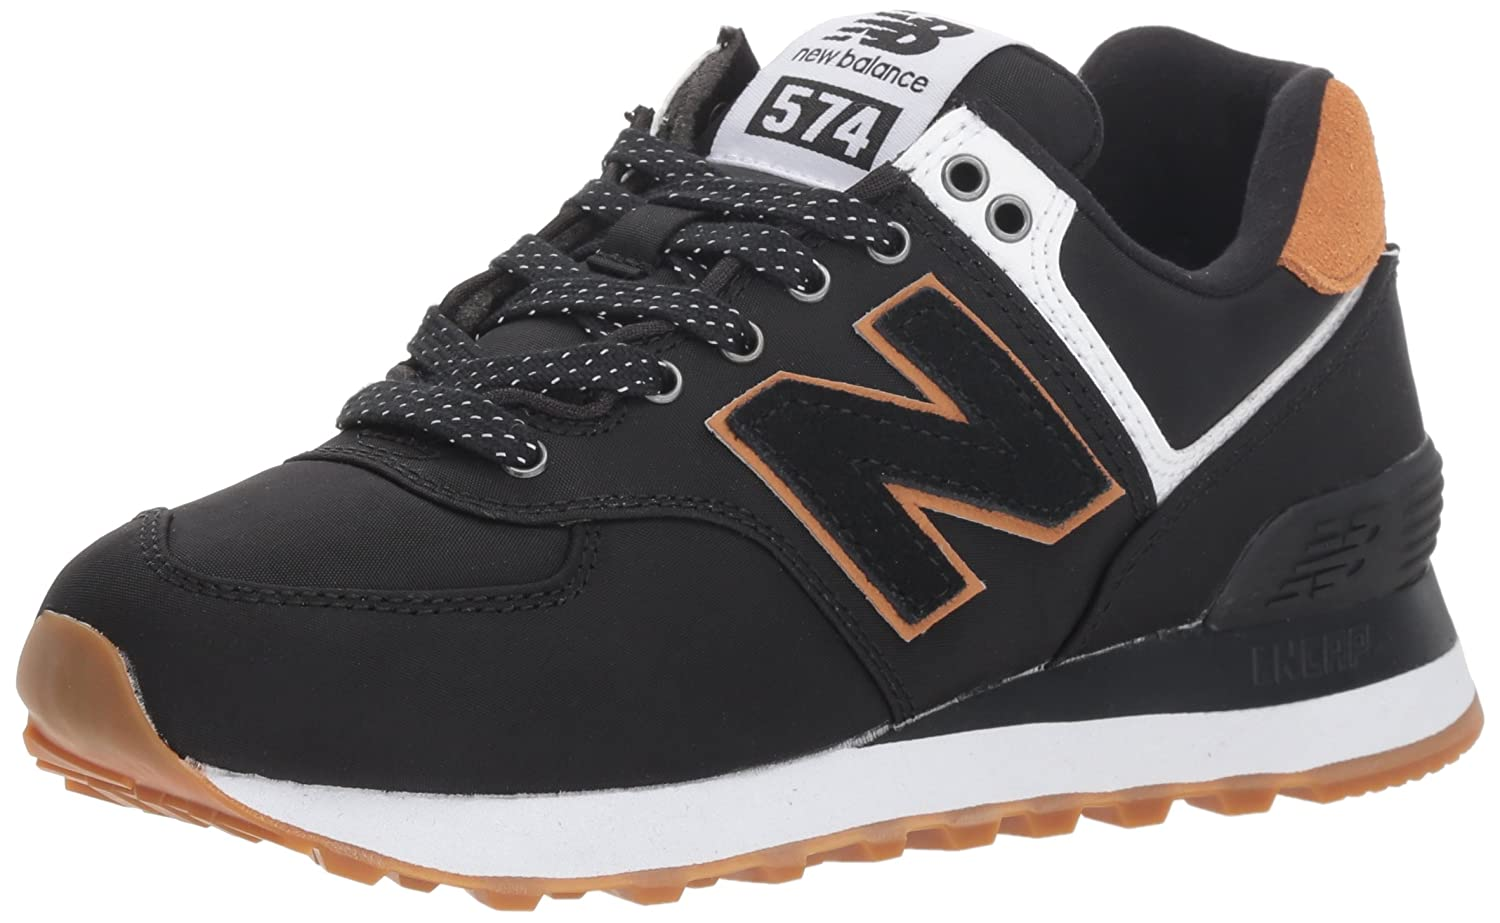 New Balance Women's 574v2 Sneaker B075R84PM6 5 B(M) US|Black